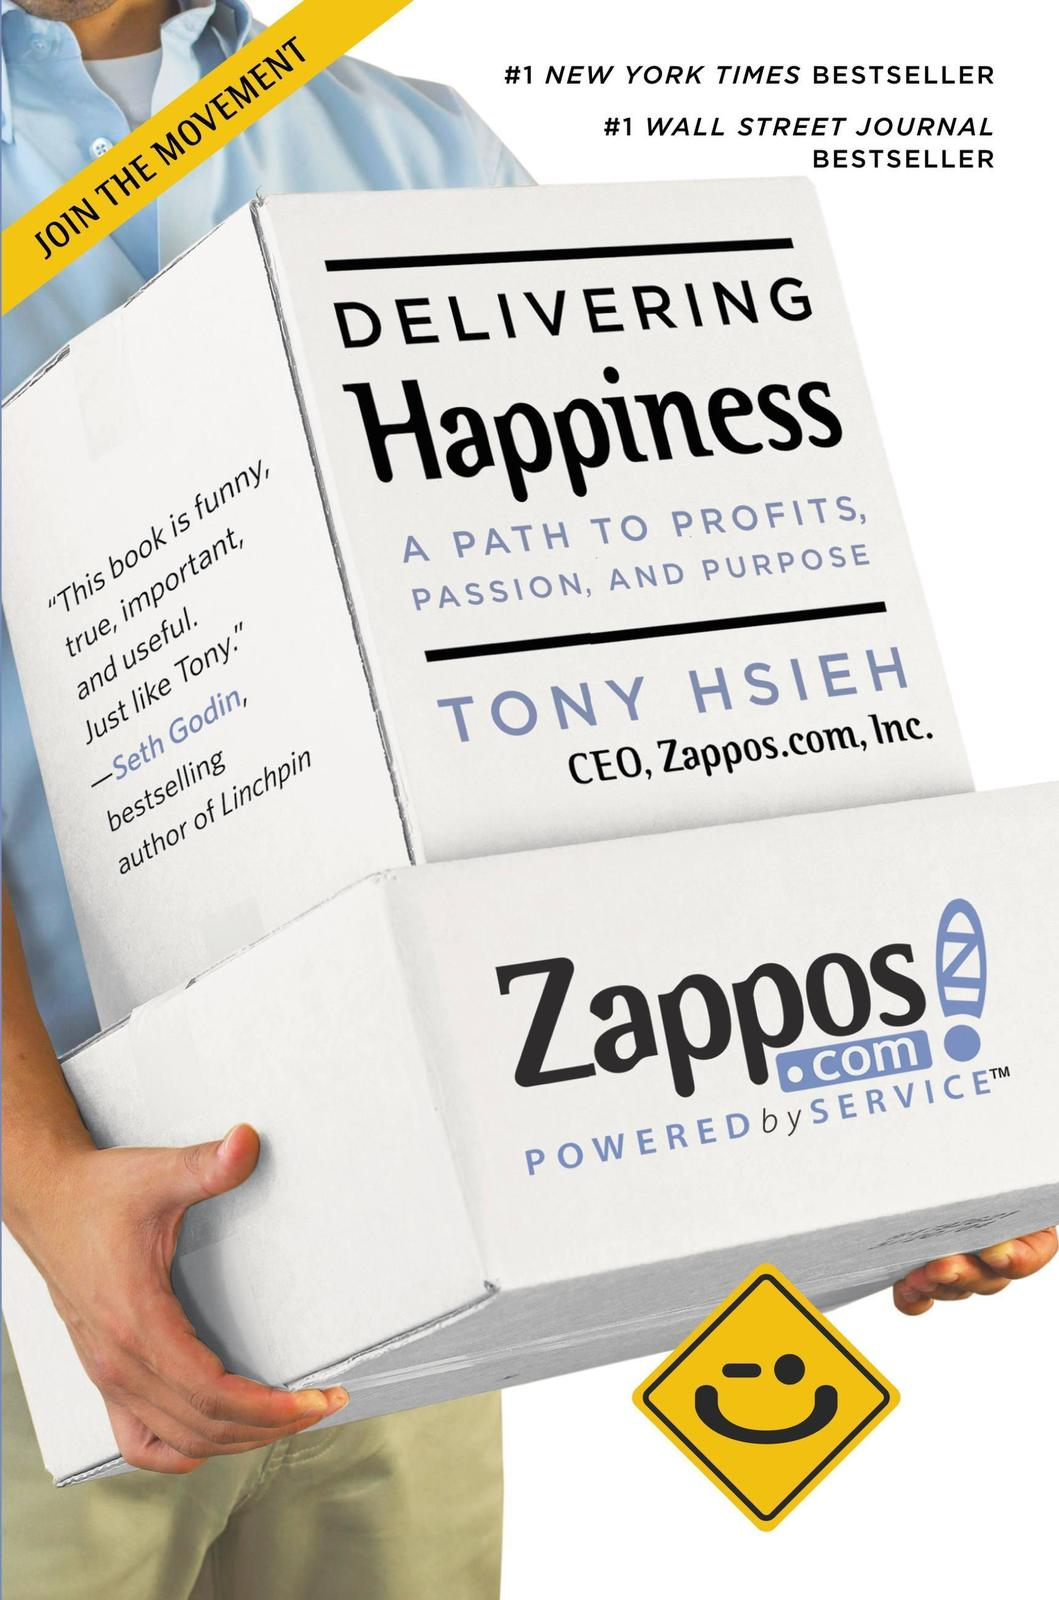 Delivering Happiness by Tony Hsieh image